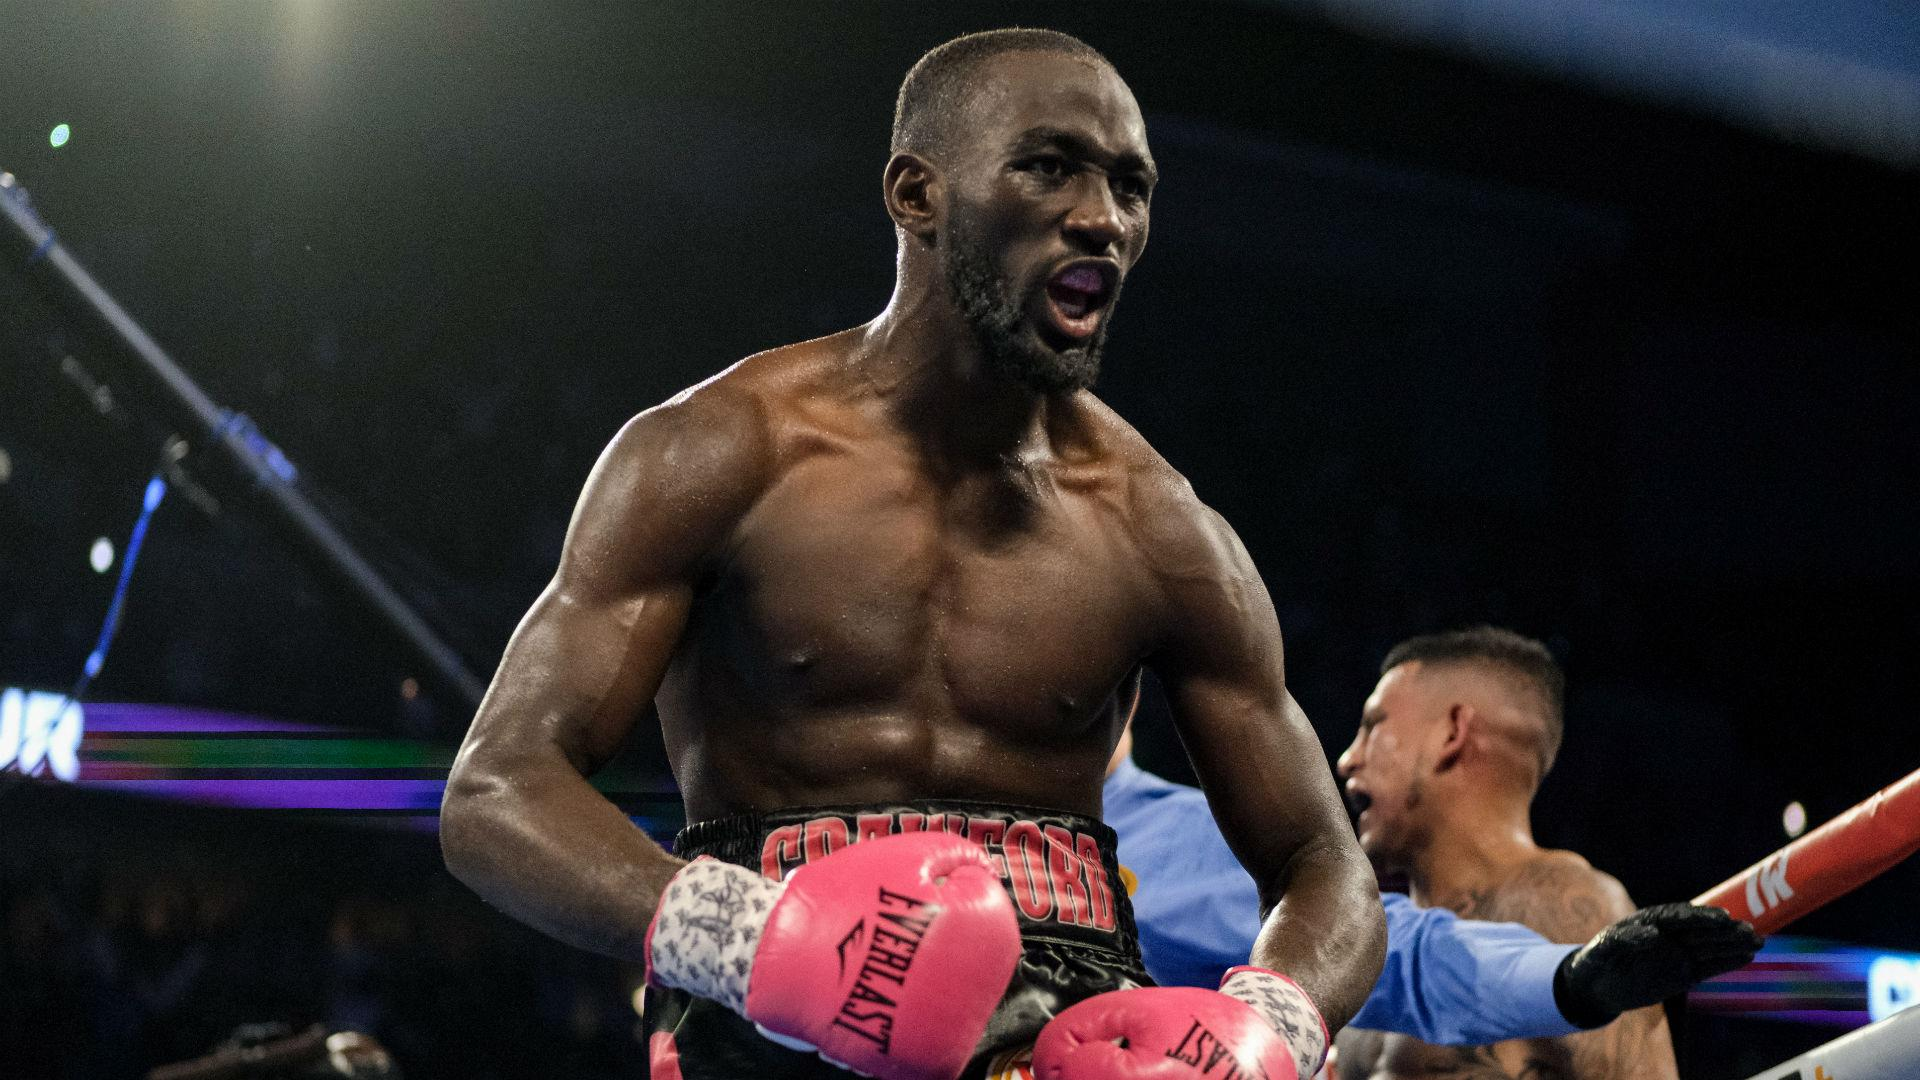 Coronavirus: Terence Crawford bizarrely suggests pandemic is a conspiracy